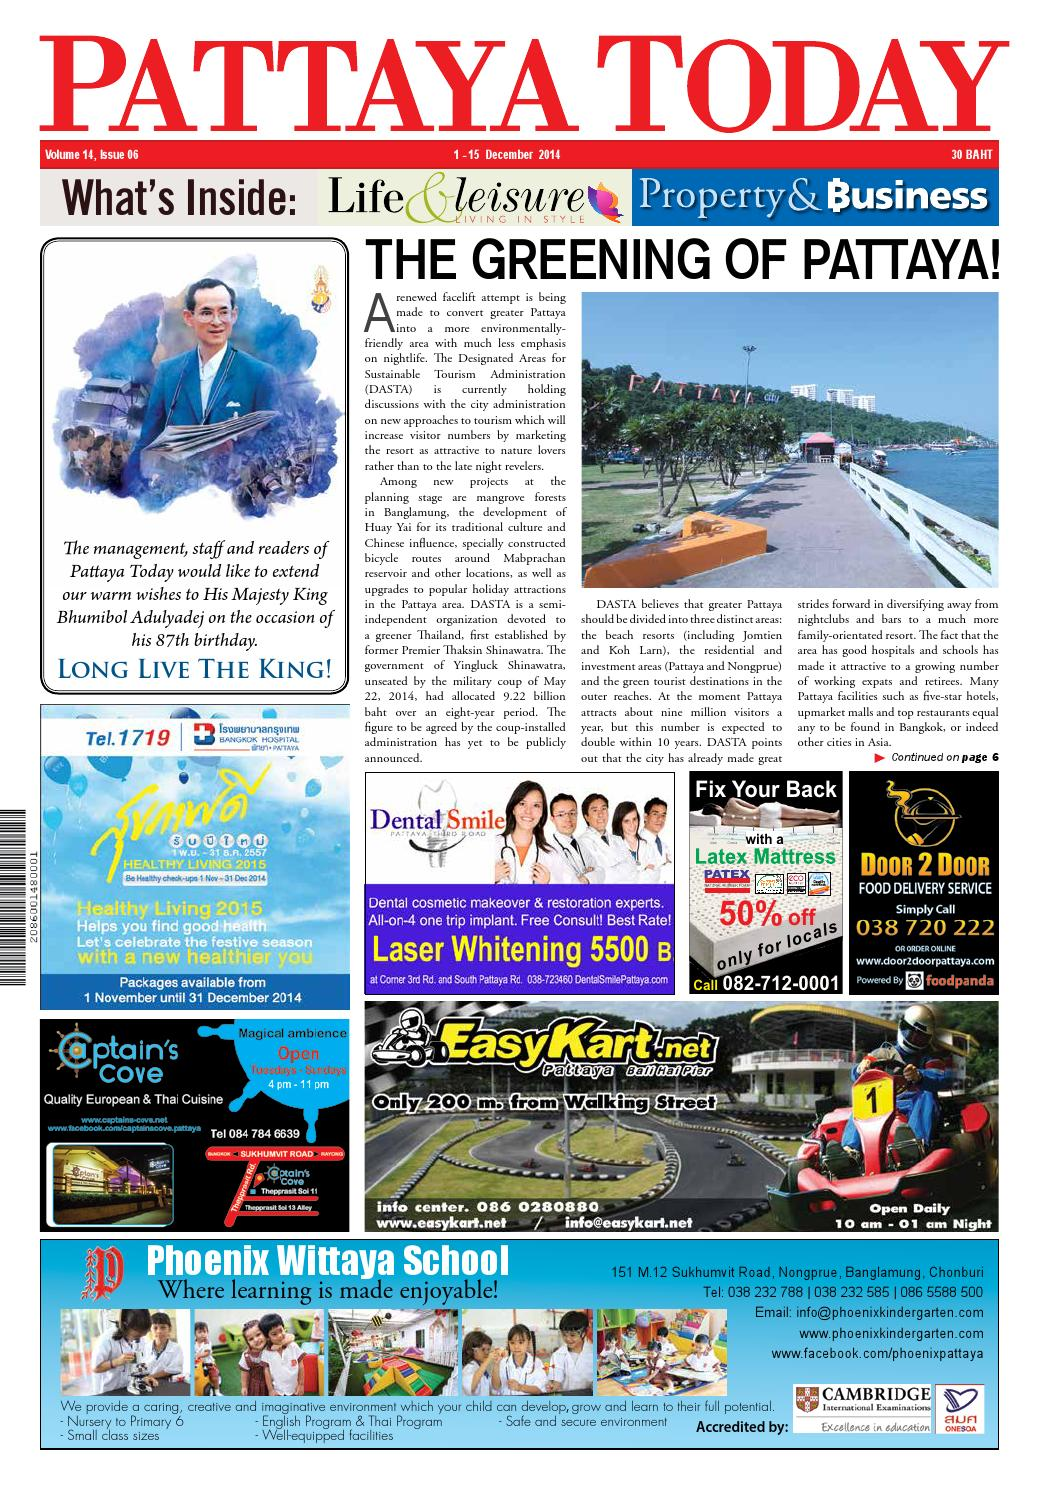 Vol 14 issue 06 1 15 december 2014 by pattaya today issuu